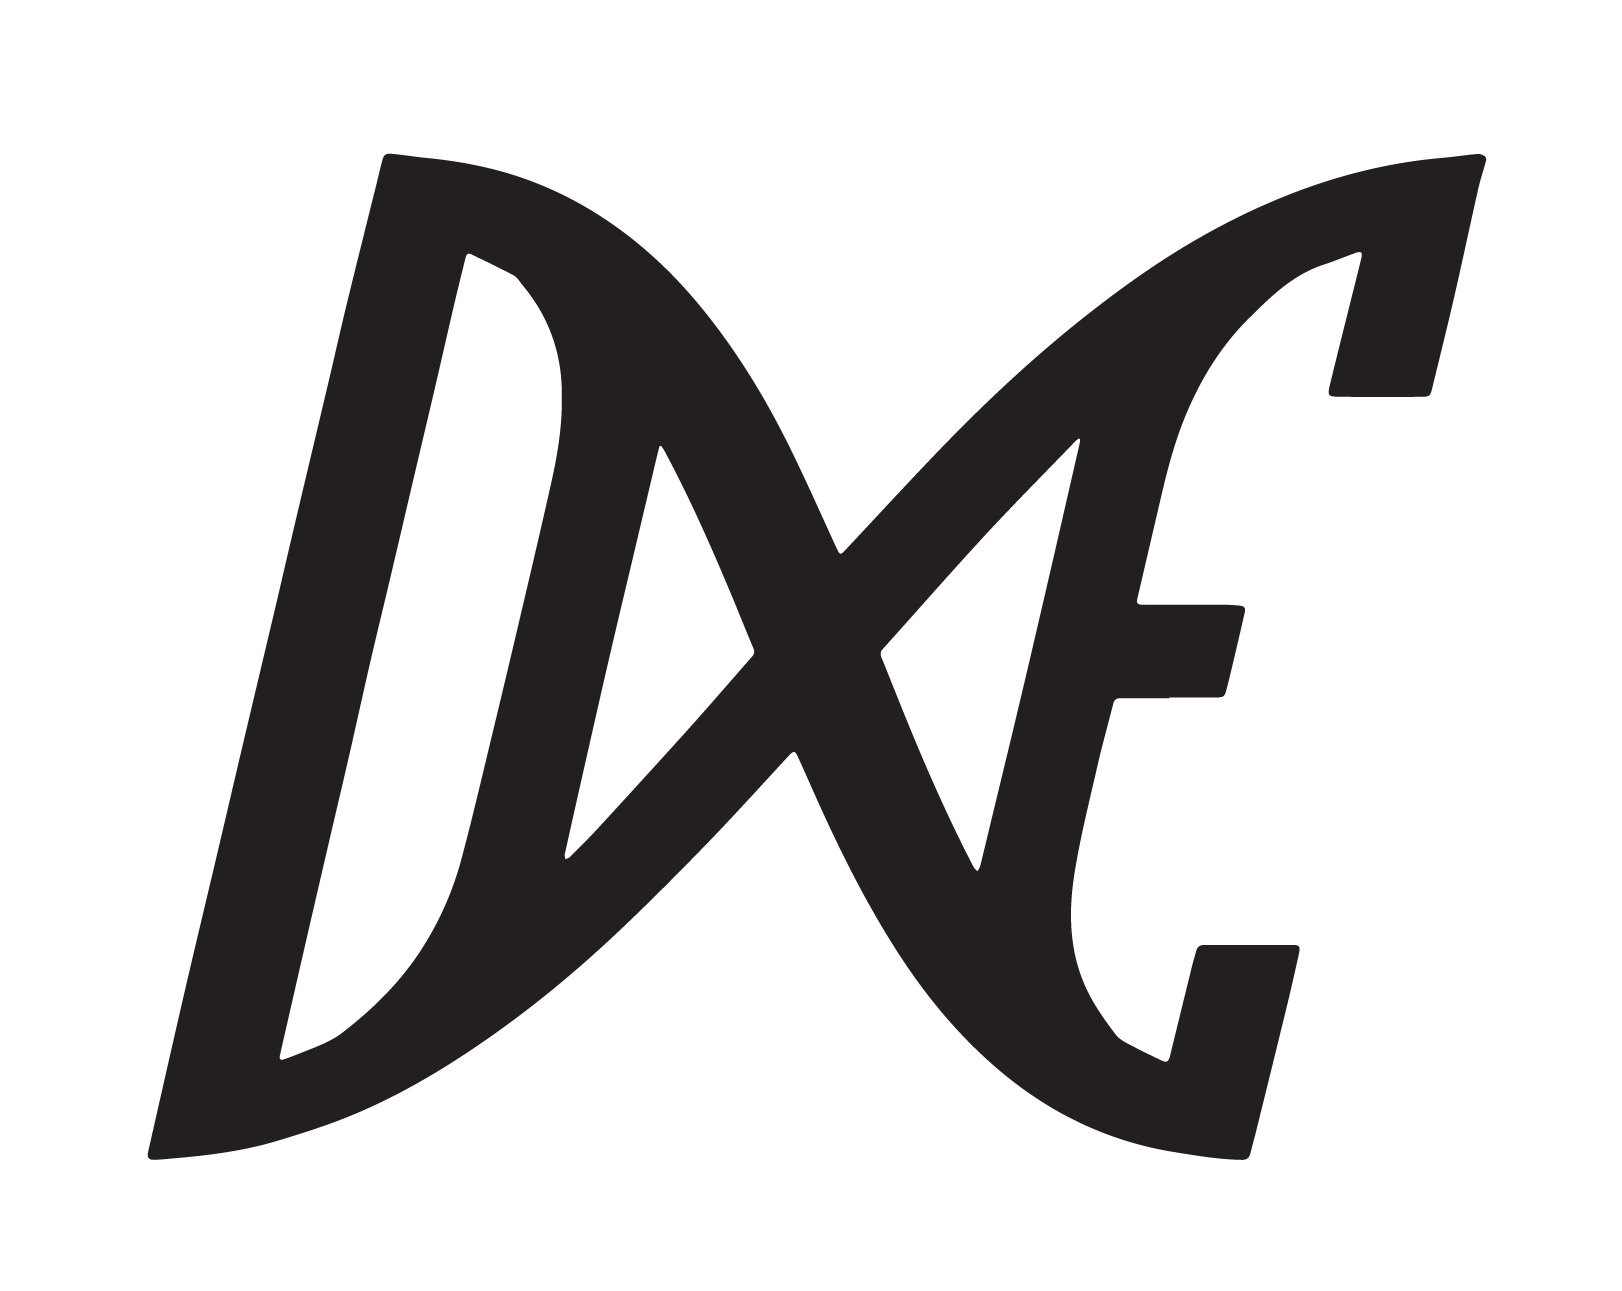 dxe 2020 logo only black